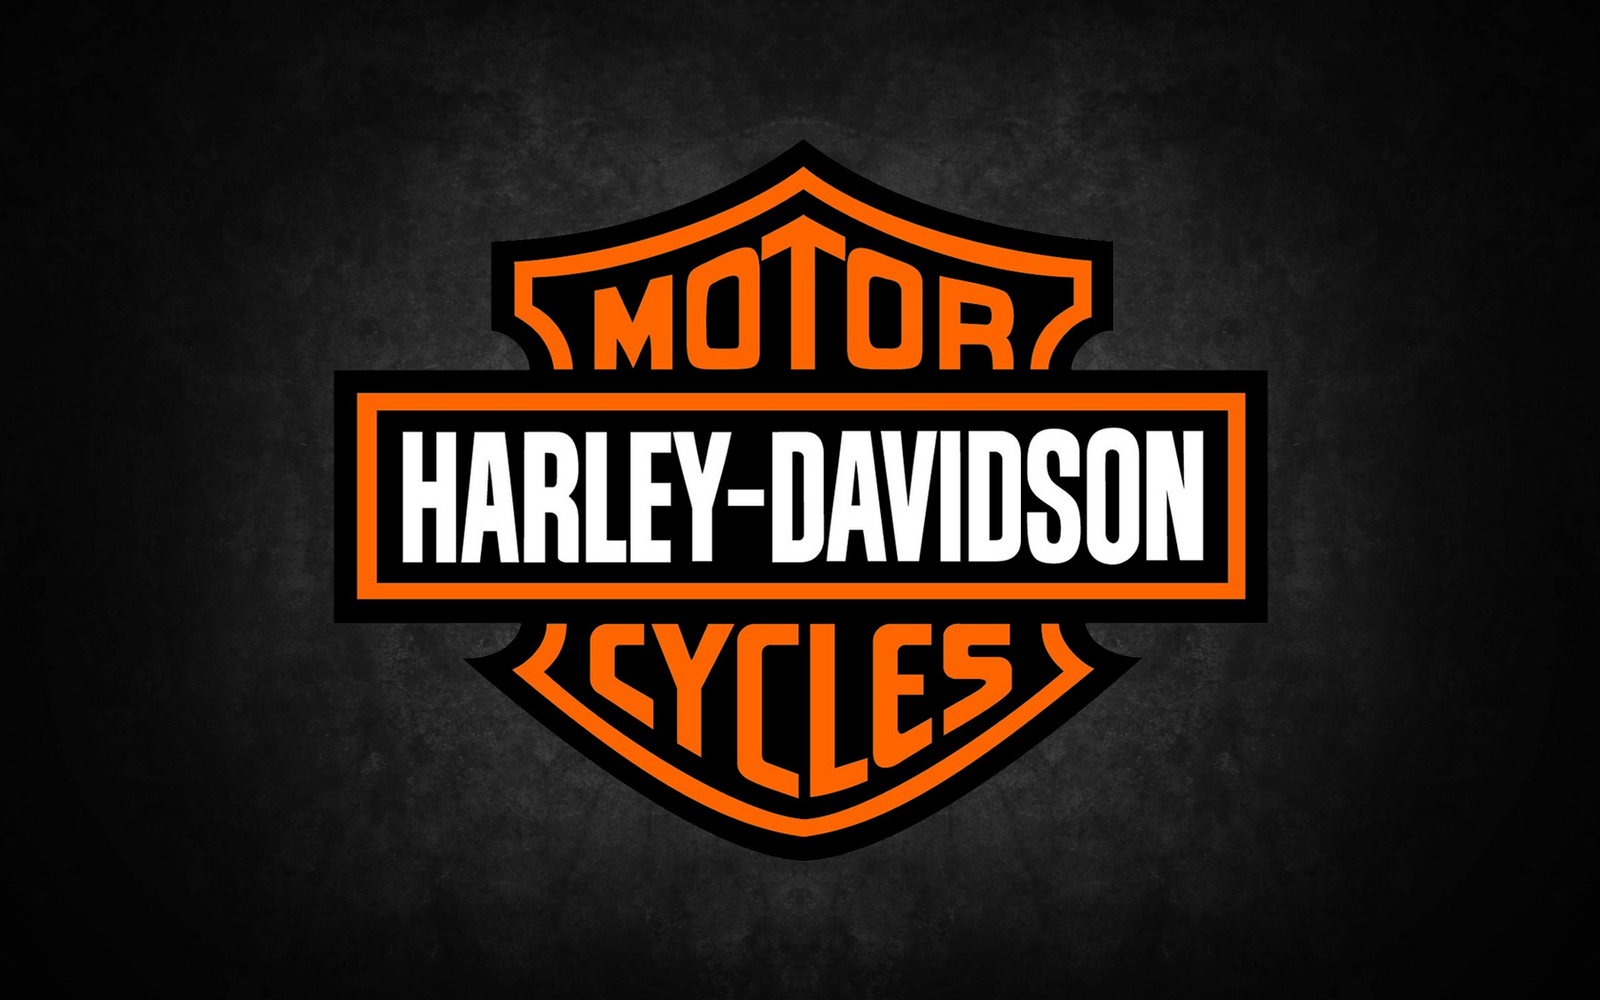 Harley Davidson Logo Exclusive HD Wallpapers 1932 1600x1000